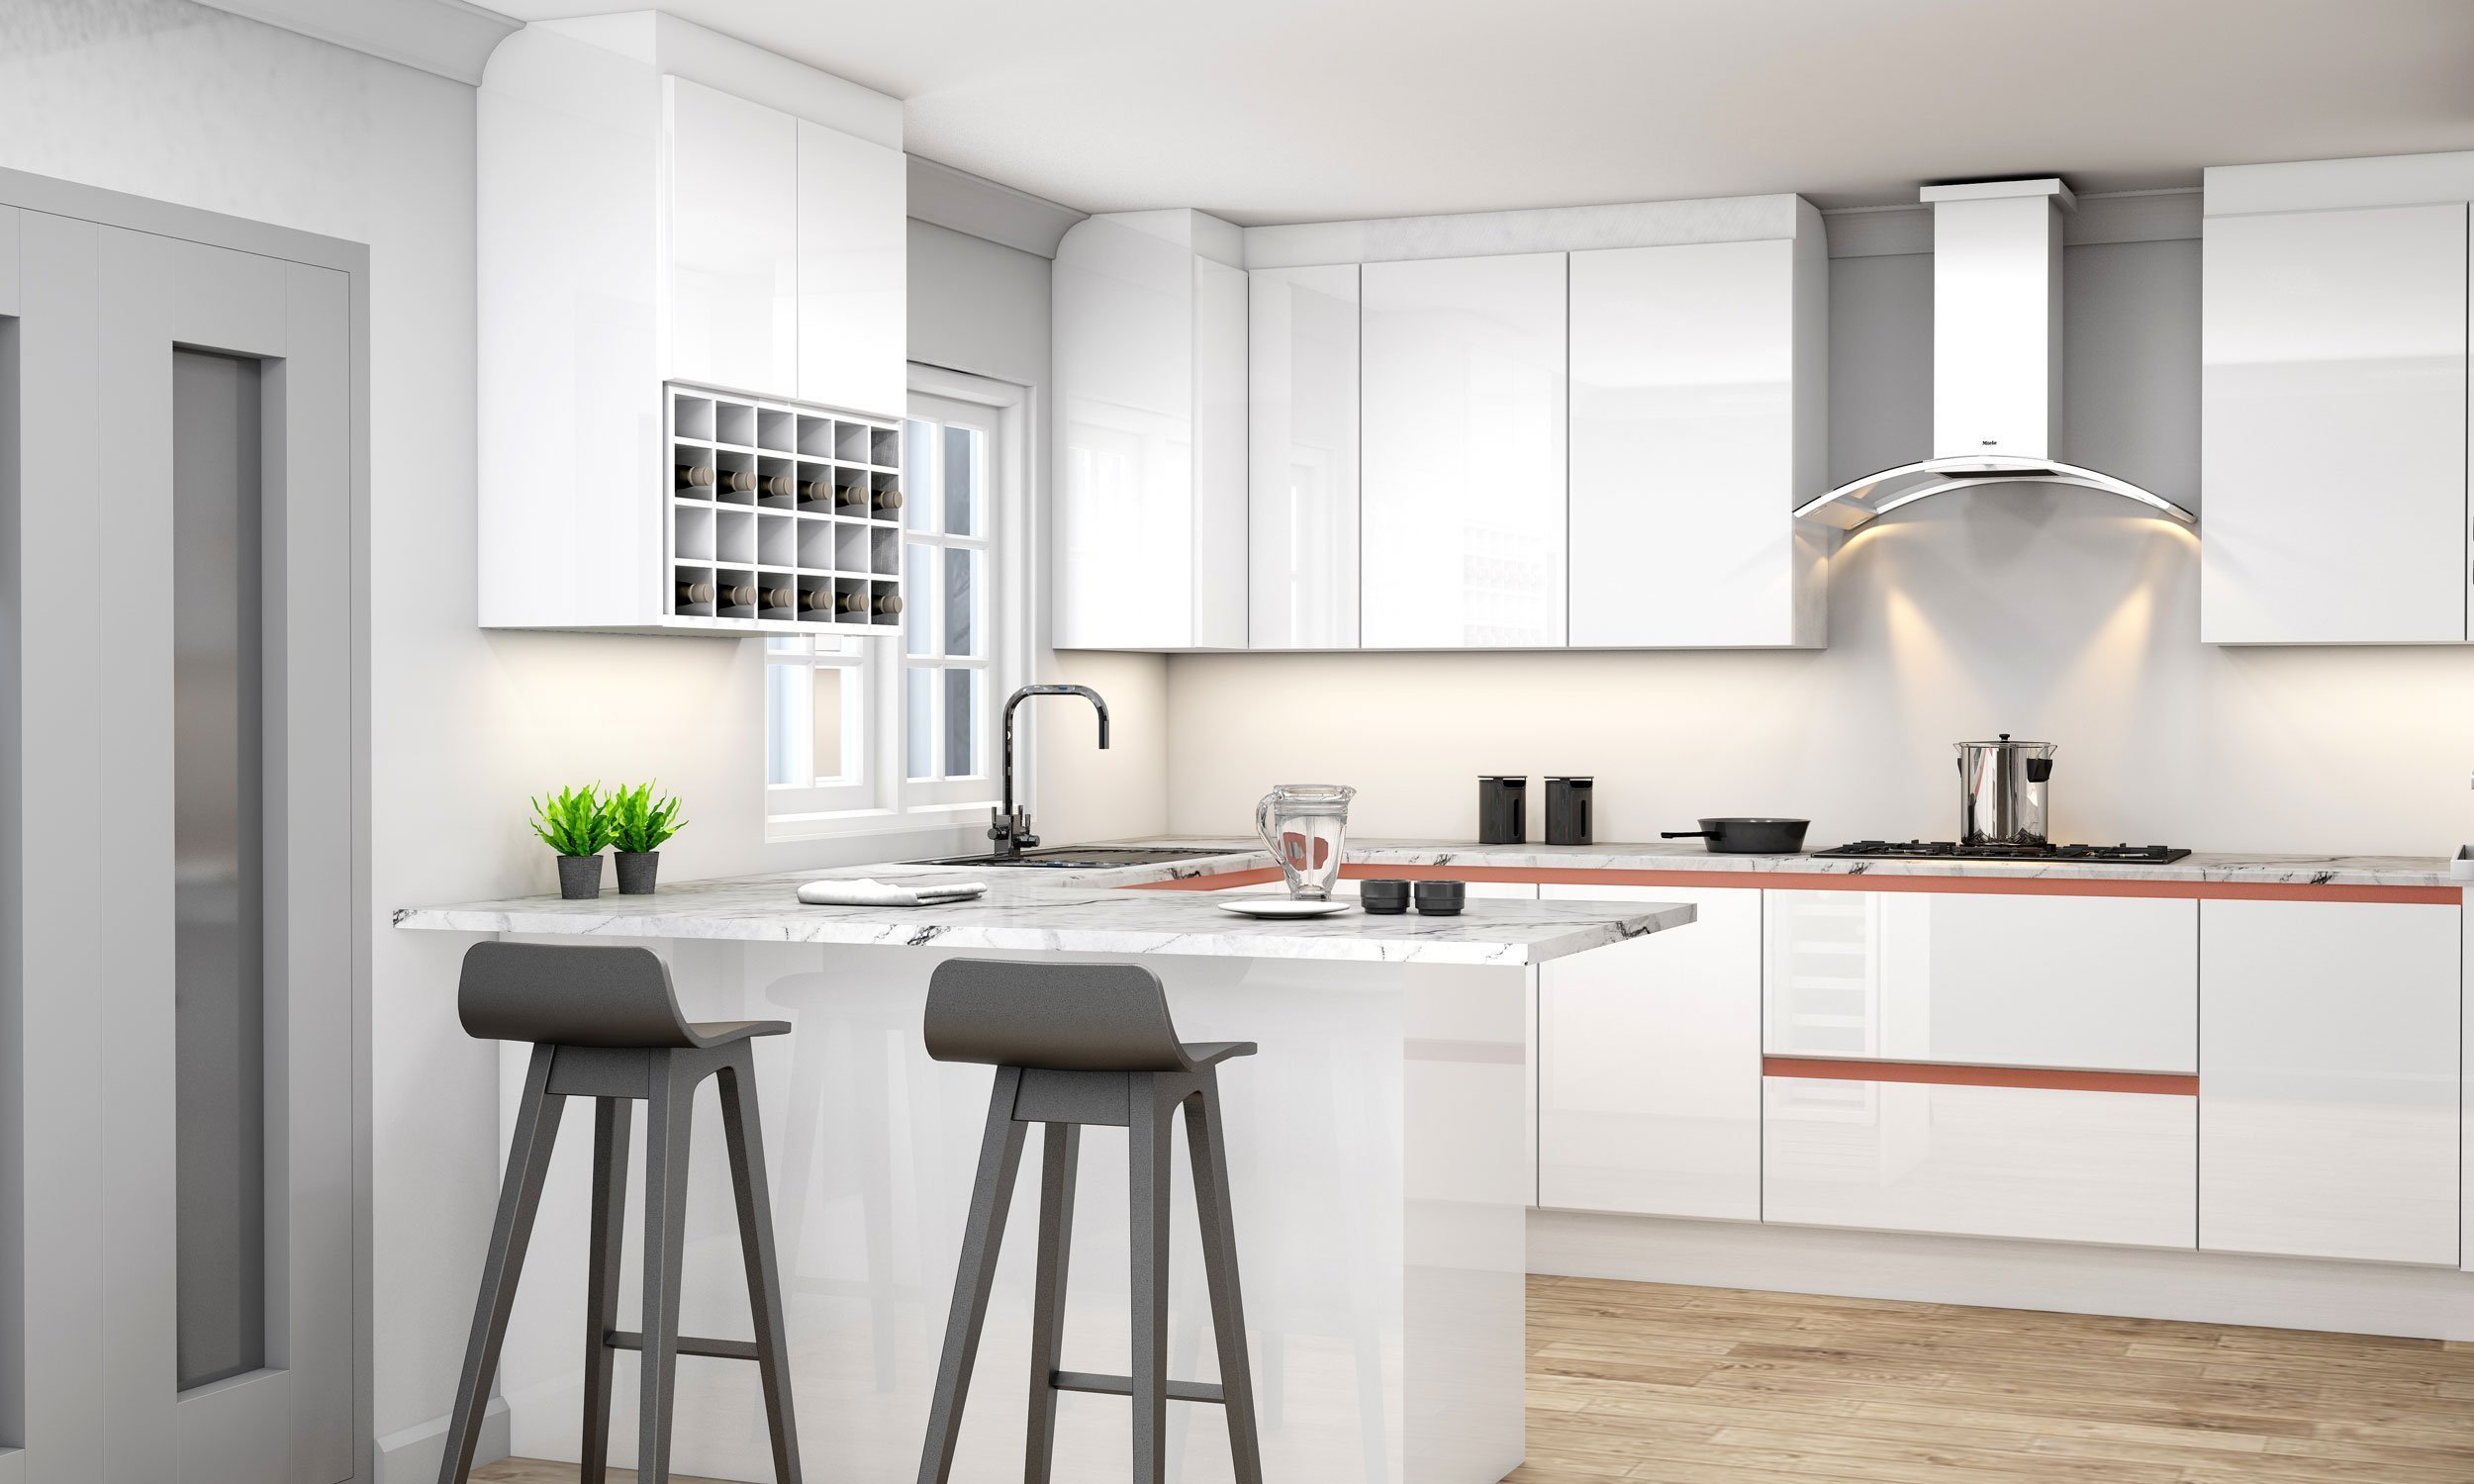 Handleless G Shape Kitchen in Brass Handle Profile With High Gloss White and Concrete Finish